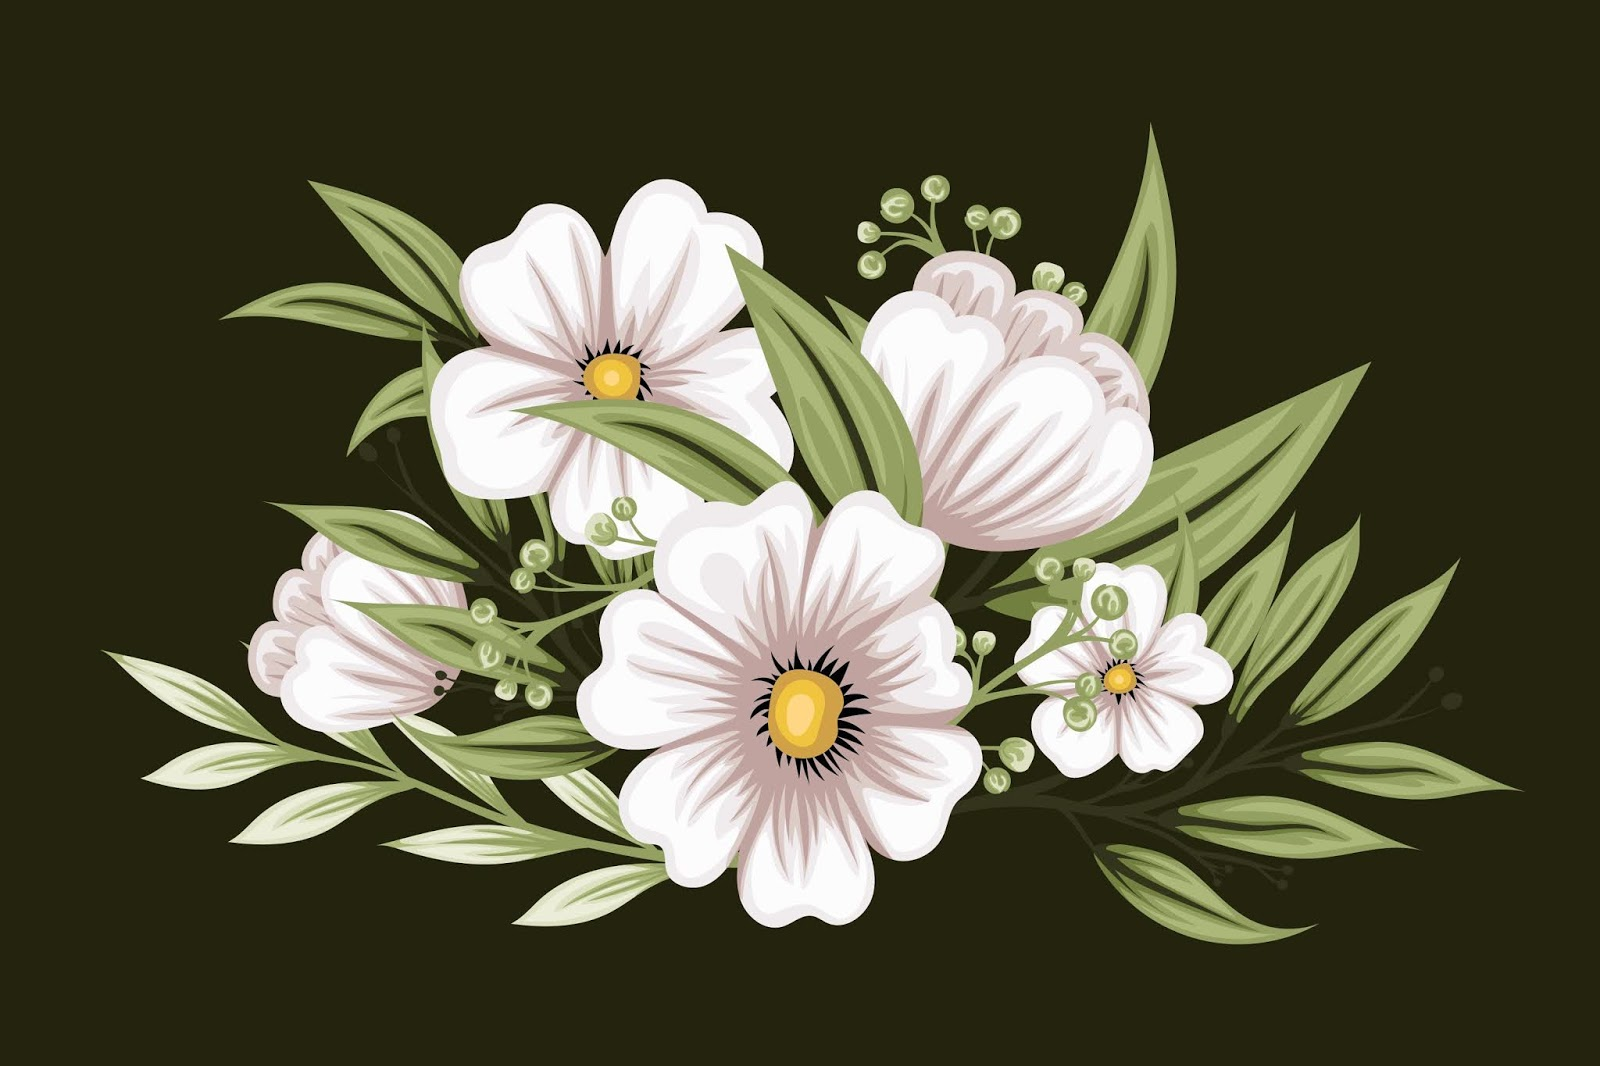 Beautiful White Bouquet Flowers Free Download Vector CDR, AI, EPS and PNG Formats